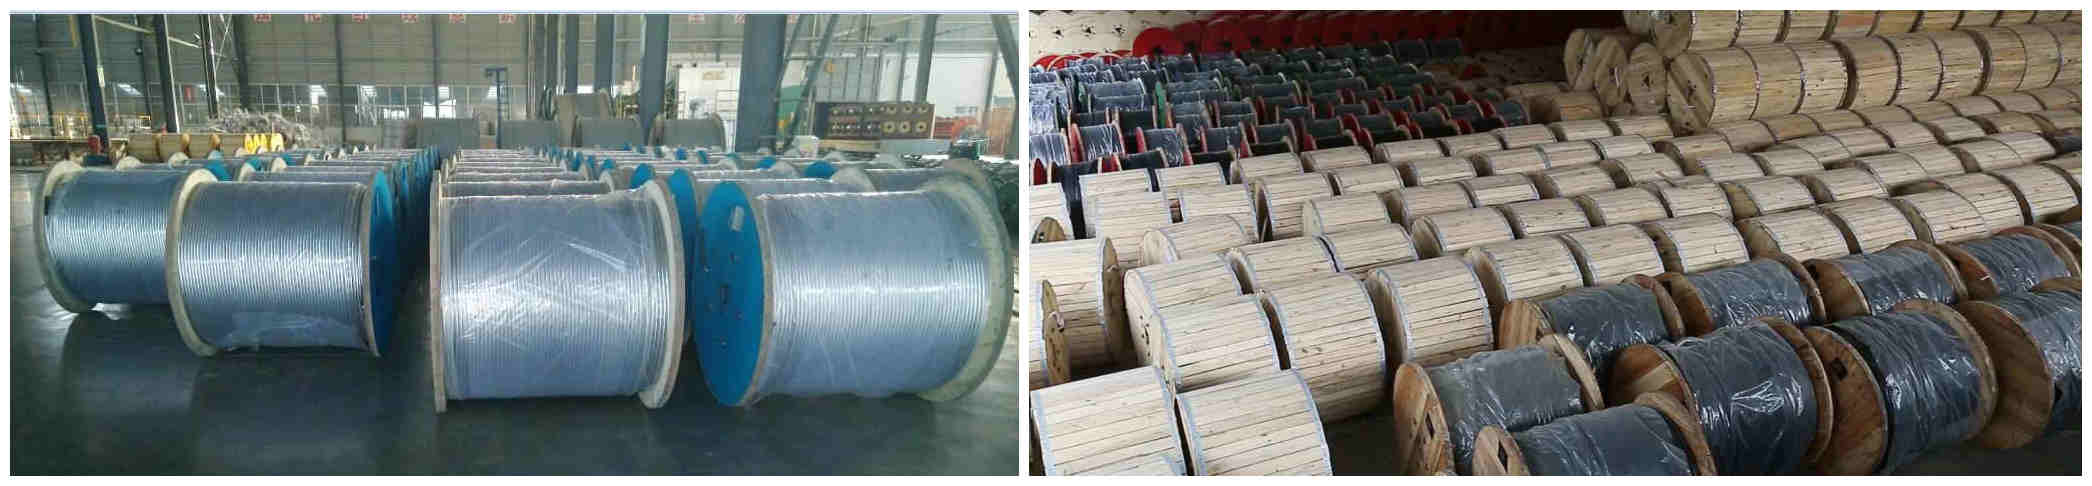 ABC (Aerial Bundle) Cable- ASNZS 3560.1 (ALXLPE) stock in Huadong Cable Group